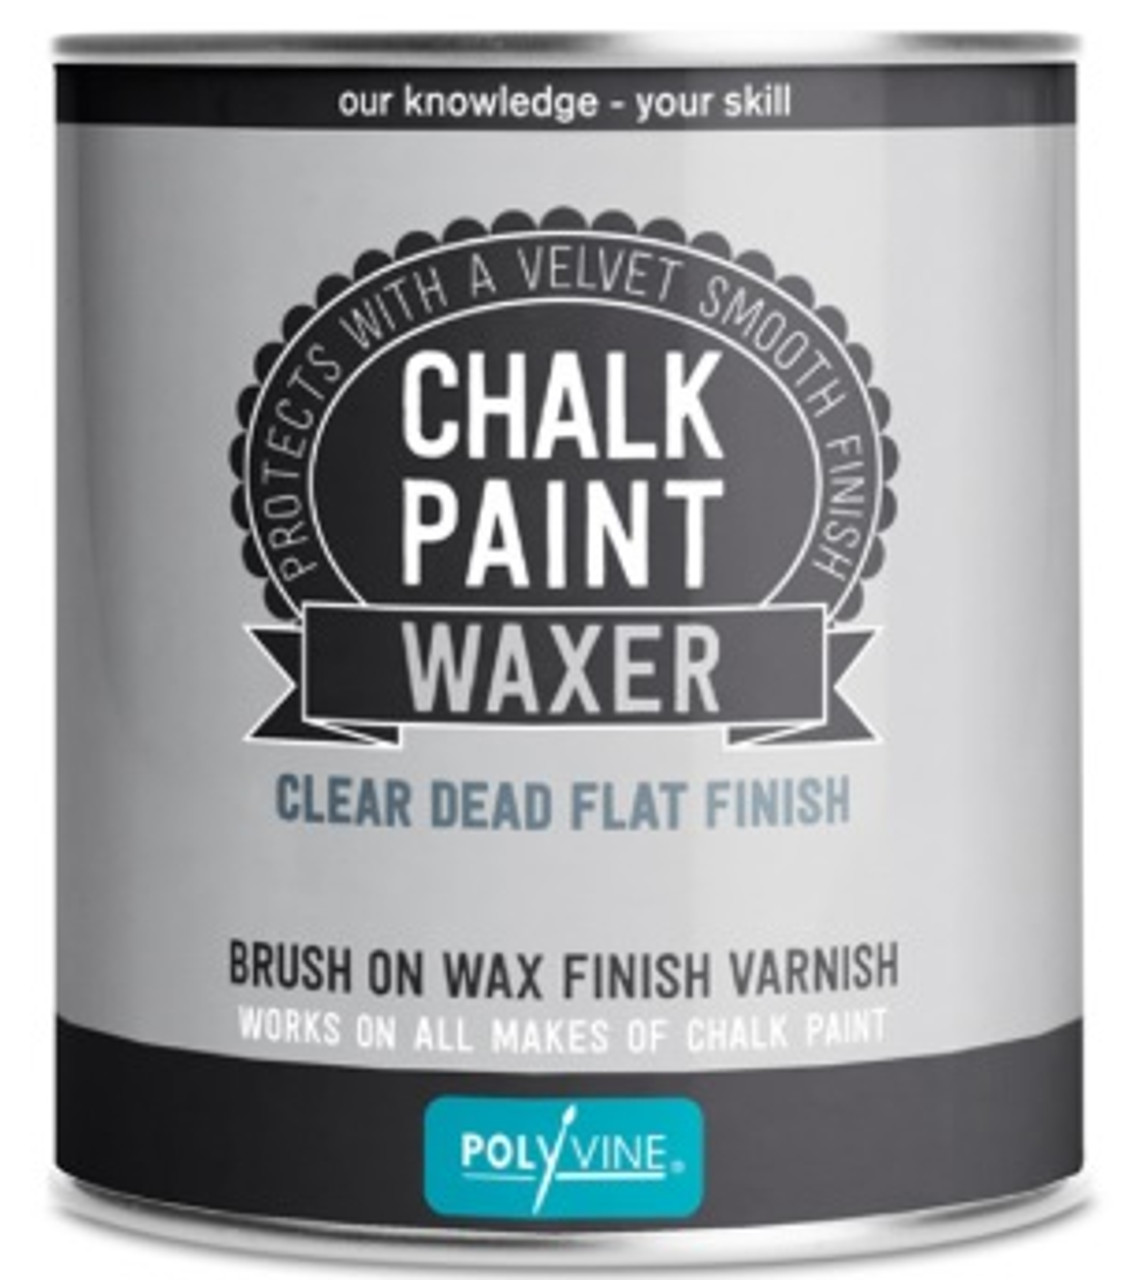 Polyvine Chalk Paint Waxer-Pint